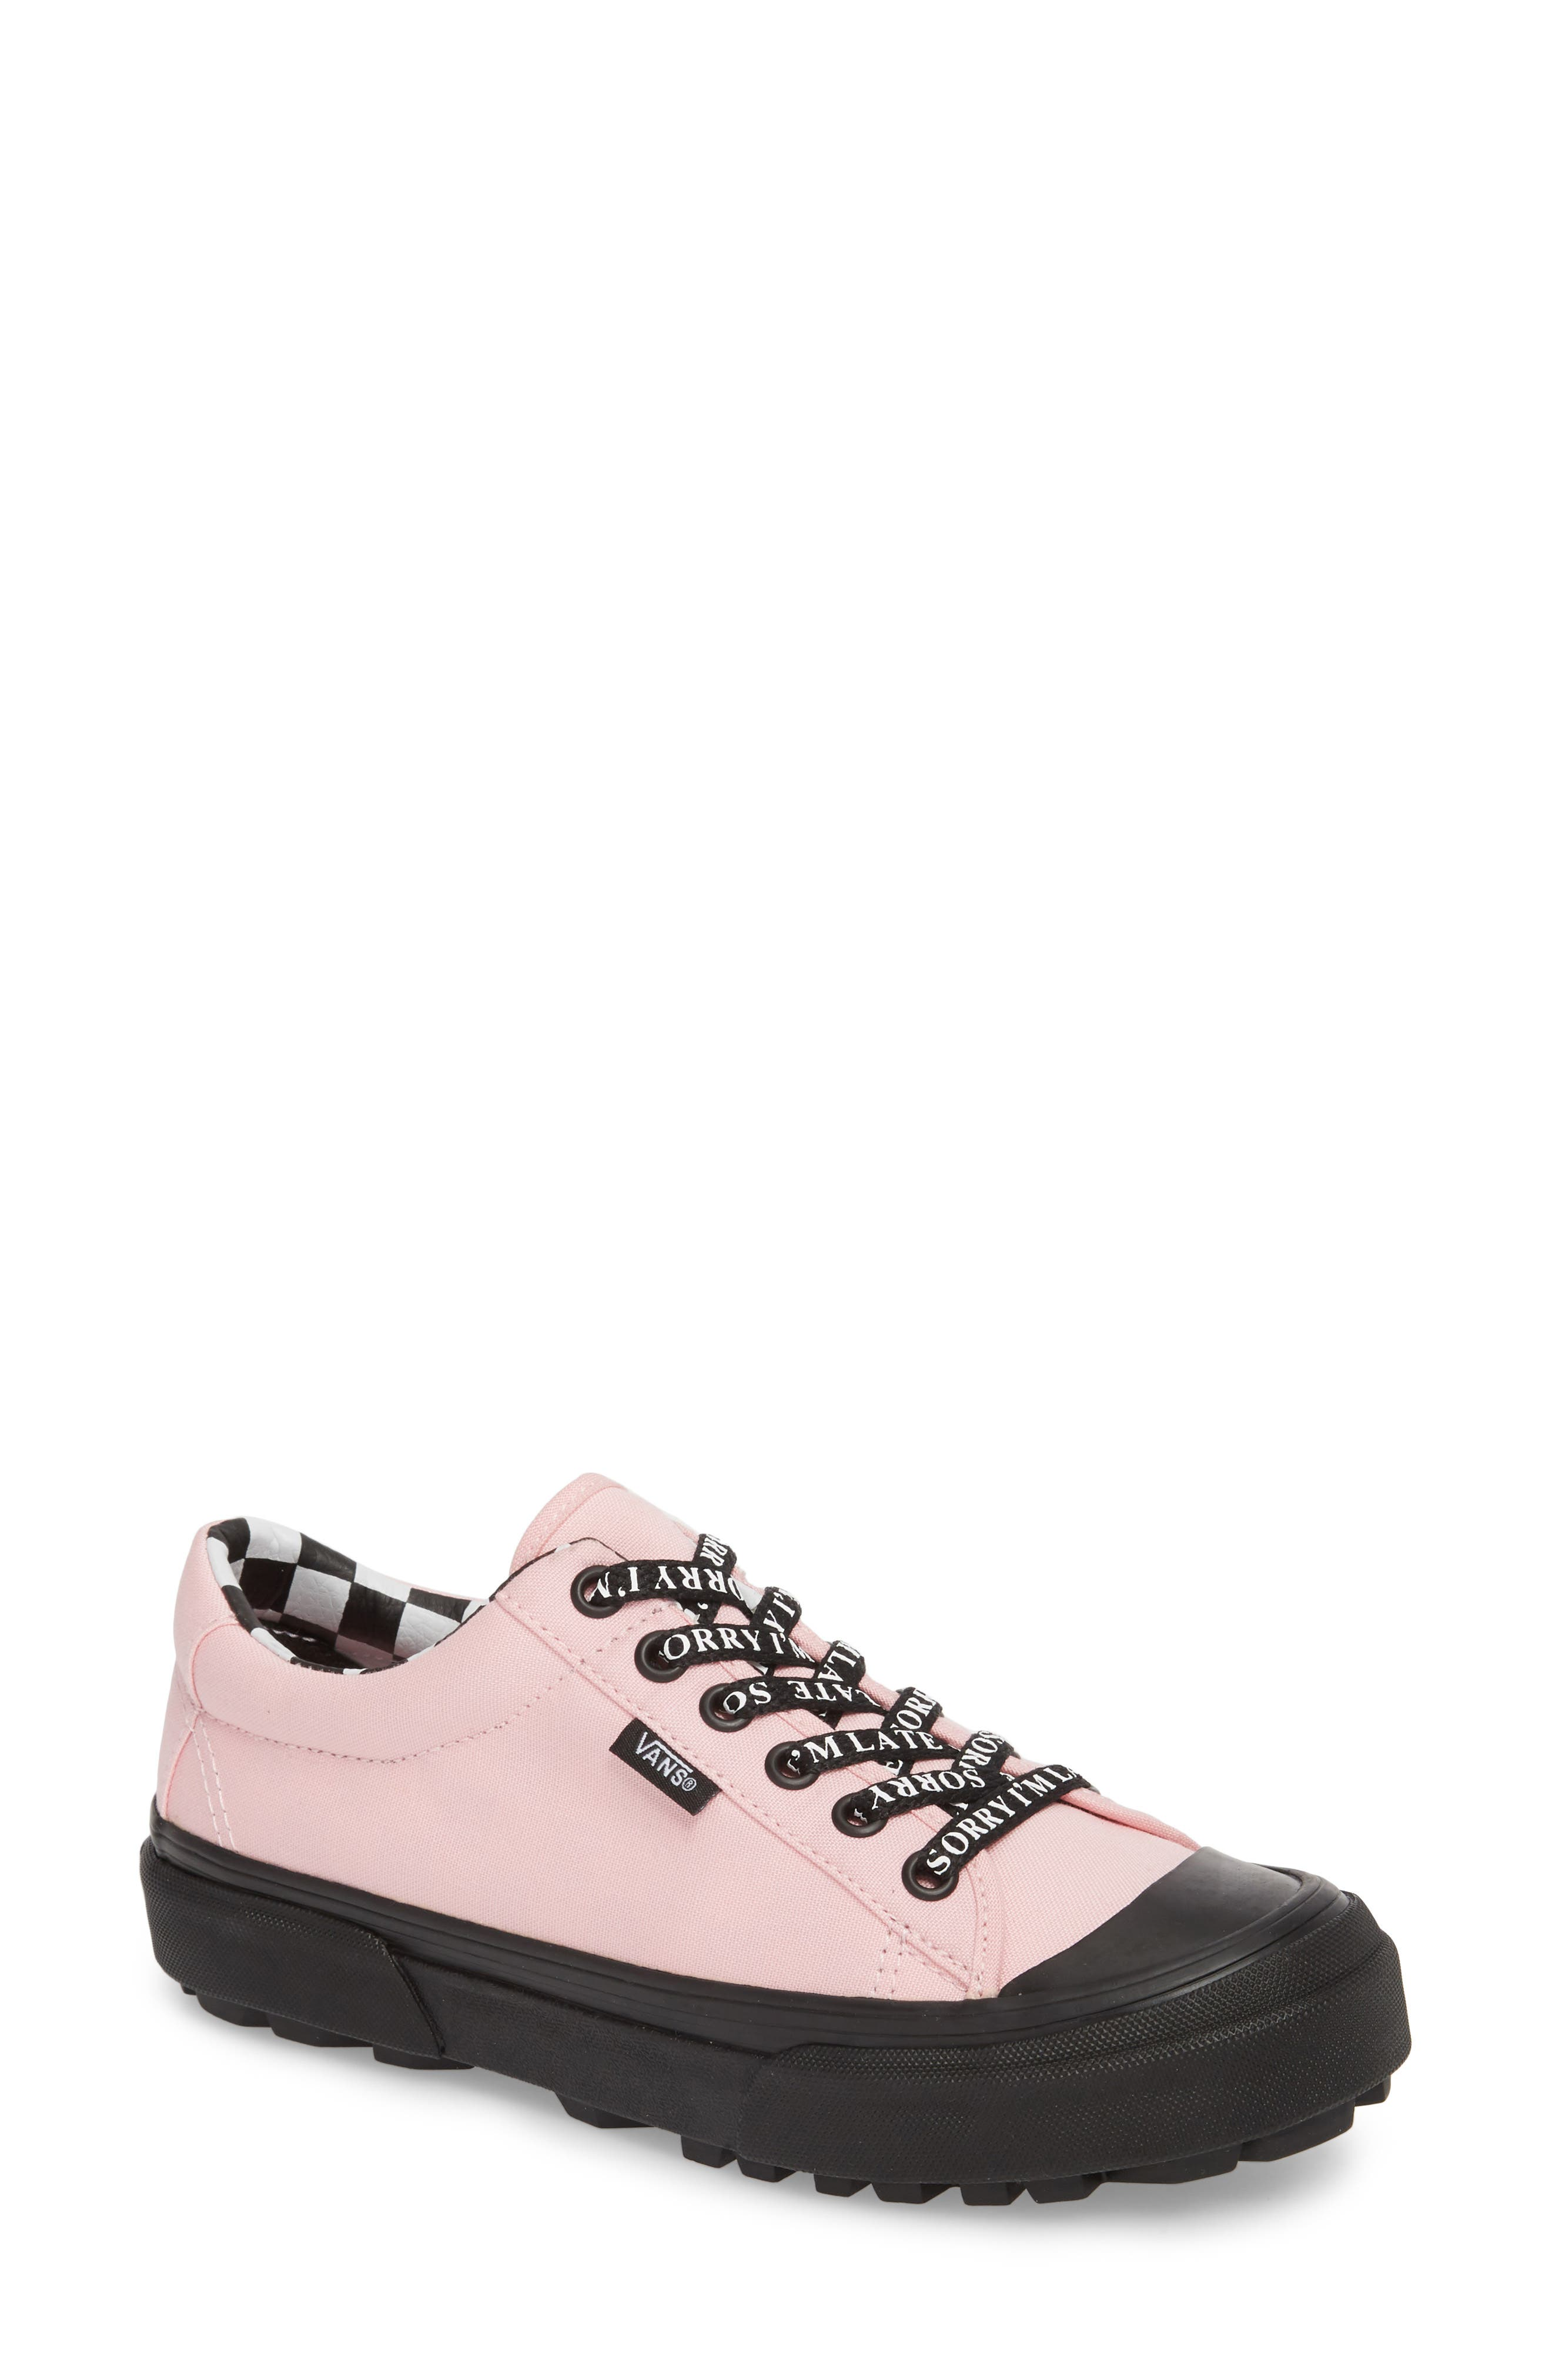 x Lazy Oaf Style 29 Low Top Sneaker,                         Main,                         color, Almond Blossom/ Black